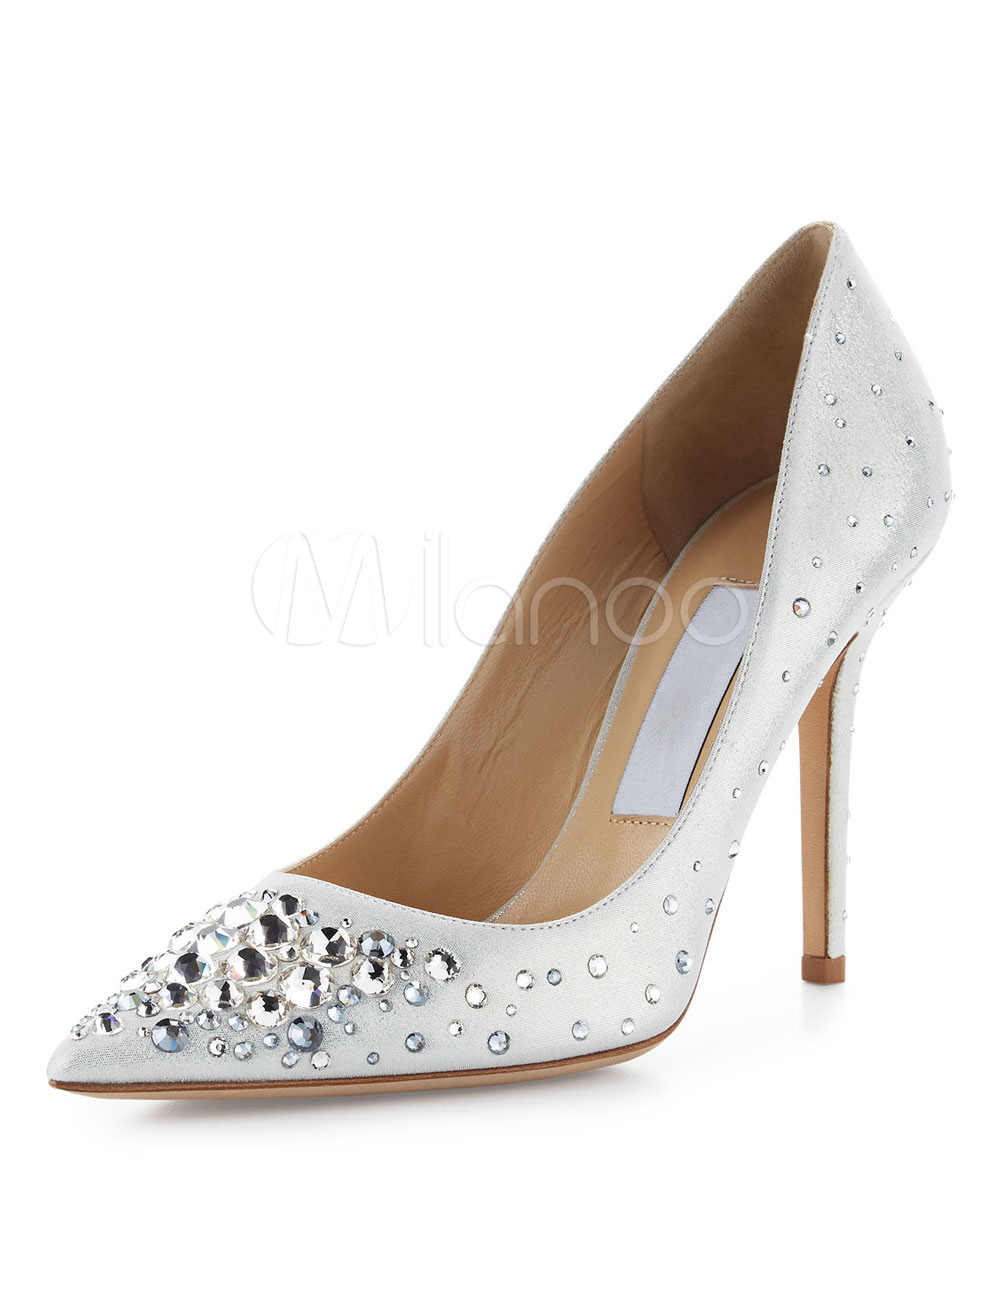 Ivory High Heels Women Dress Shoes Pointed Toe Rhinestones Slip On Pumps